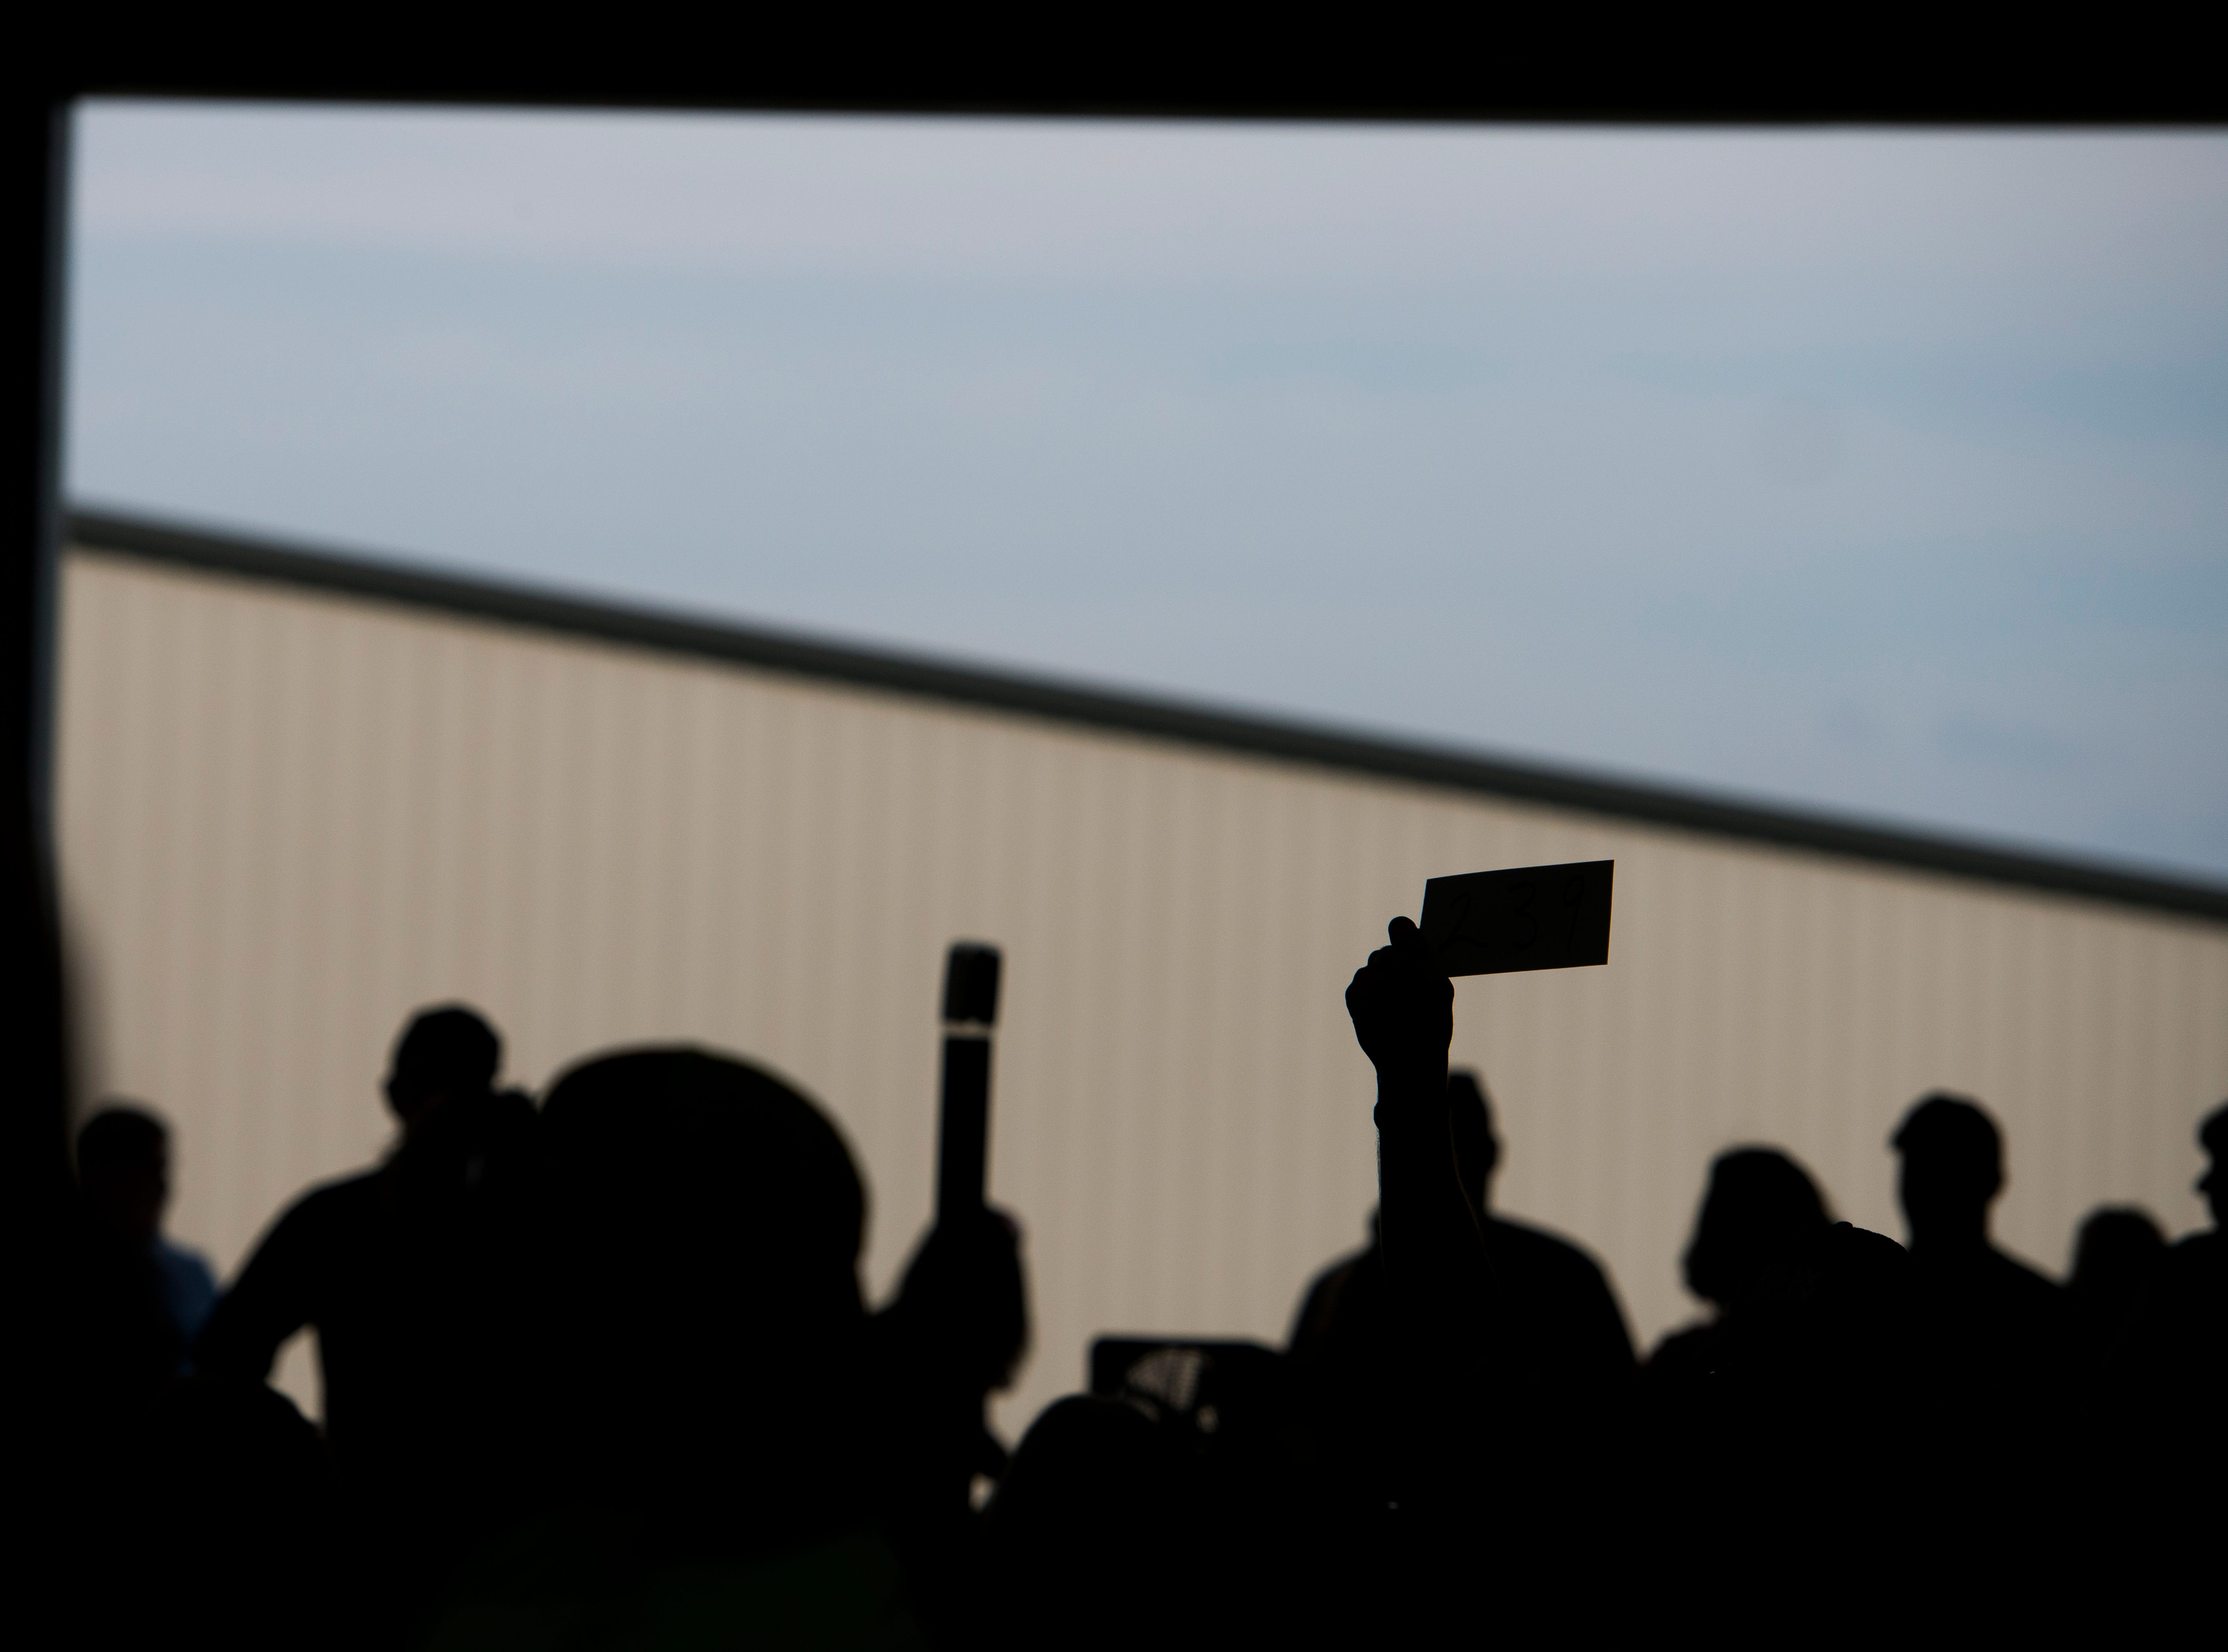 A member of the crowd lifts their ticket to bid during the Junior Fair Swine Sale at the Ross County Fair on August 9, 2018 in Chillicothe, Ohio.